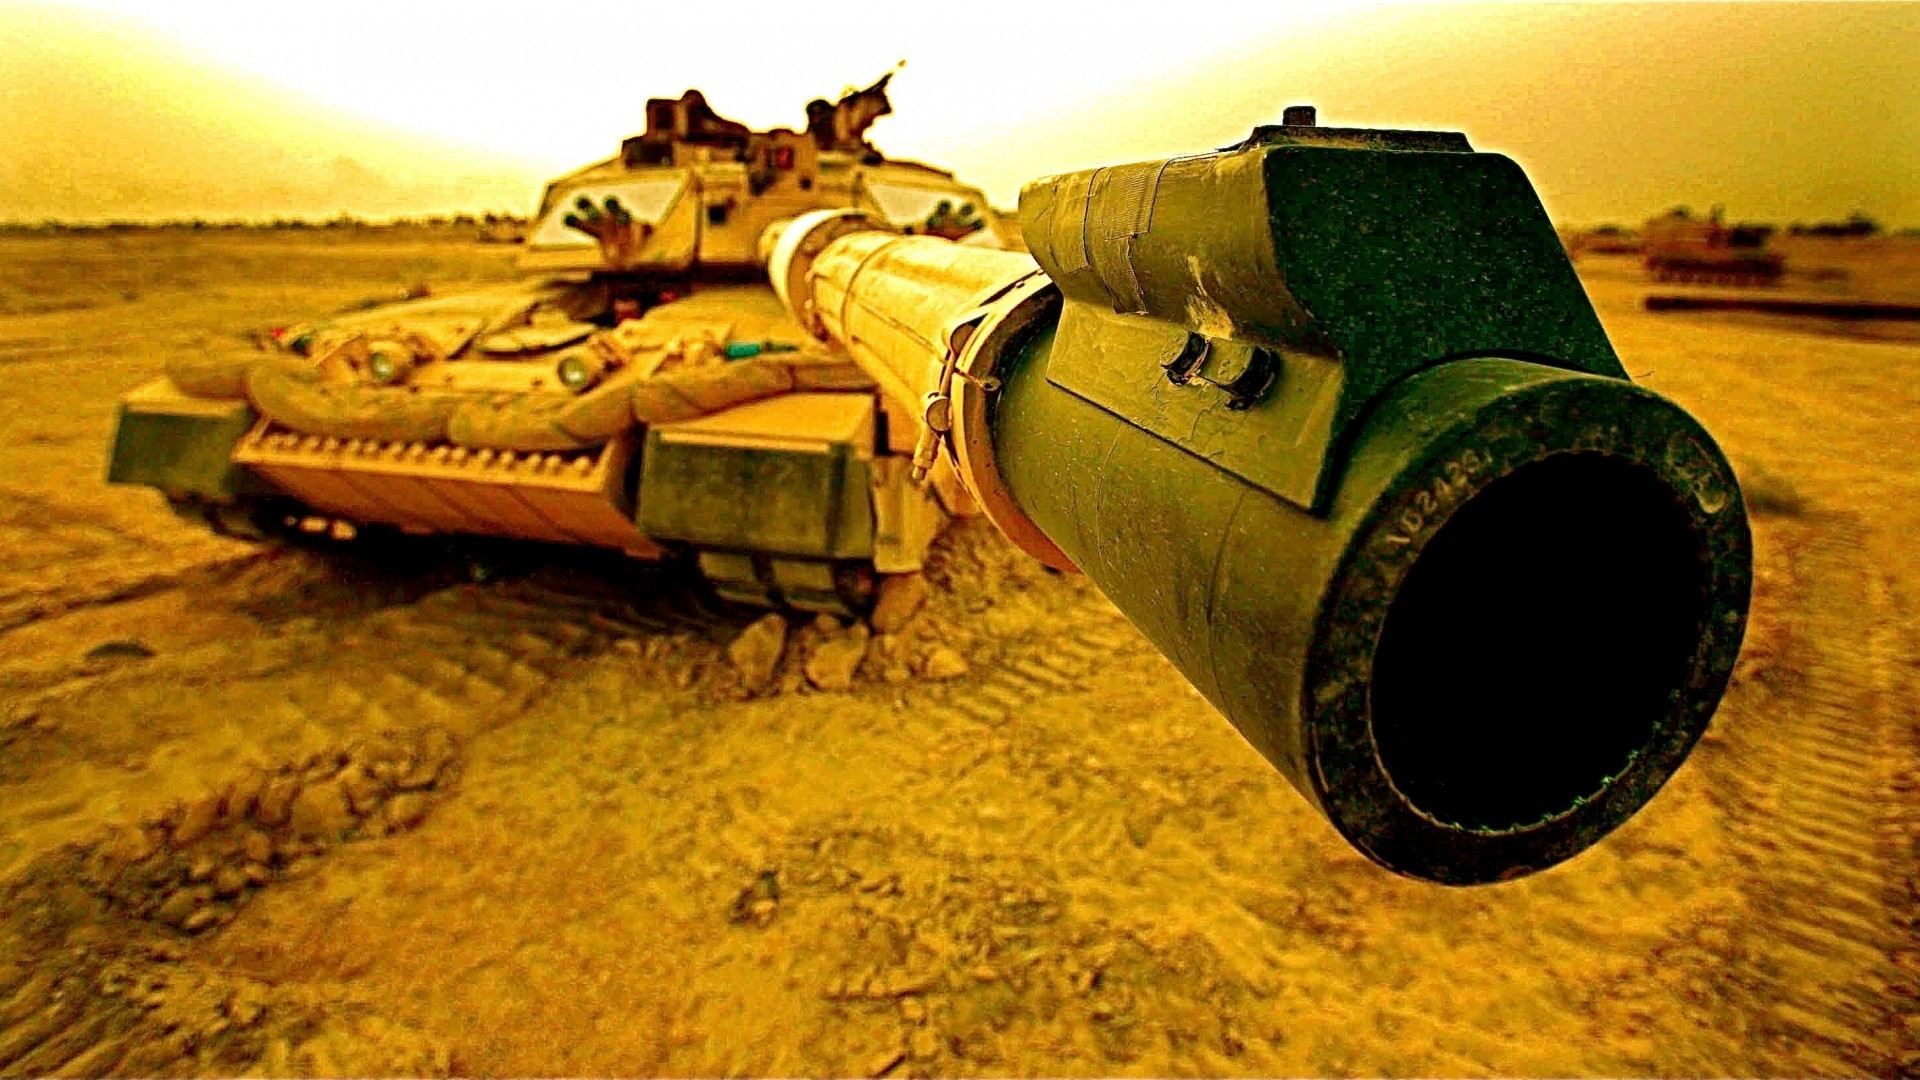 18 wallpapers, army, military, indian, cvezm6w 1852 .